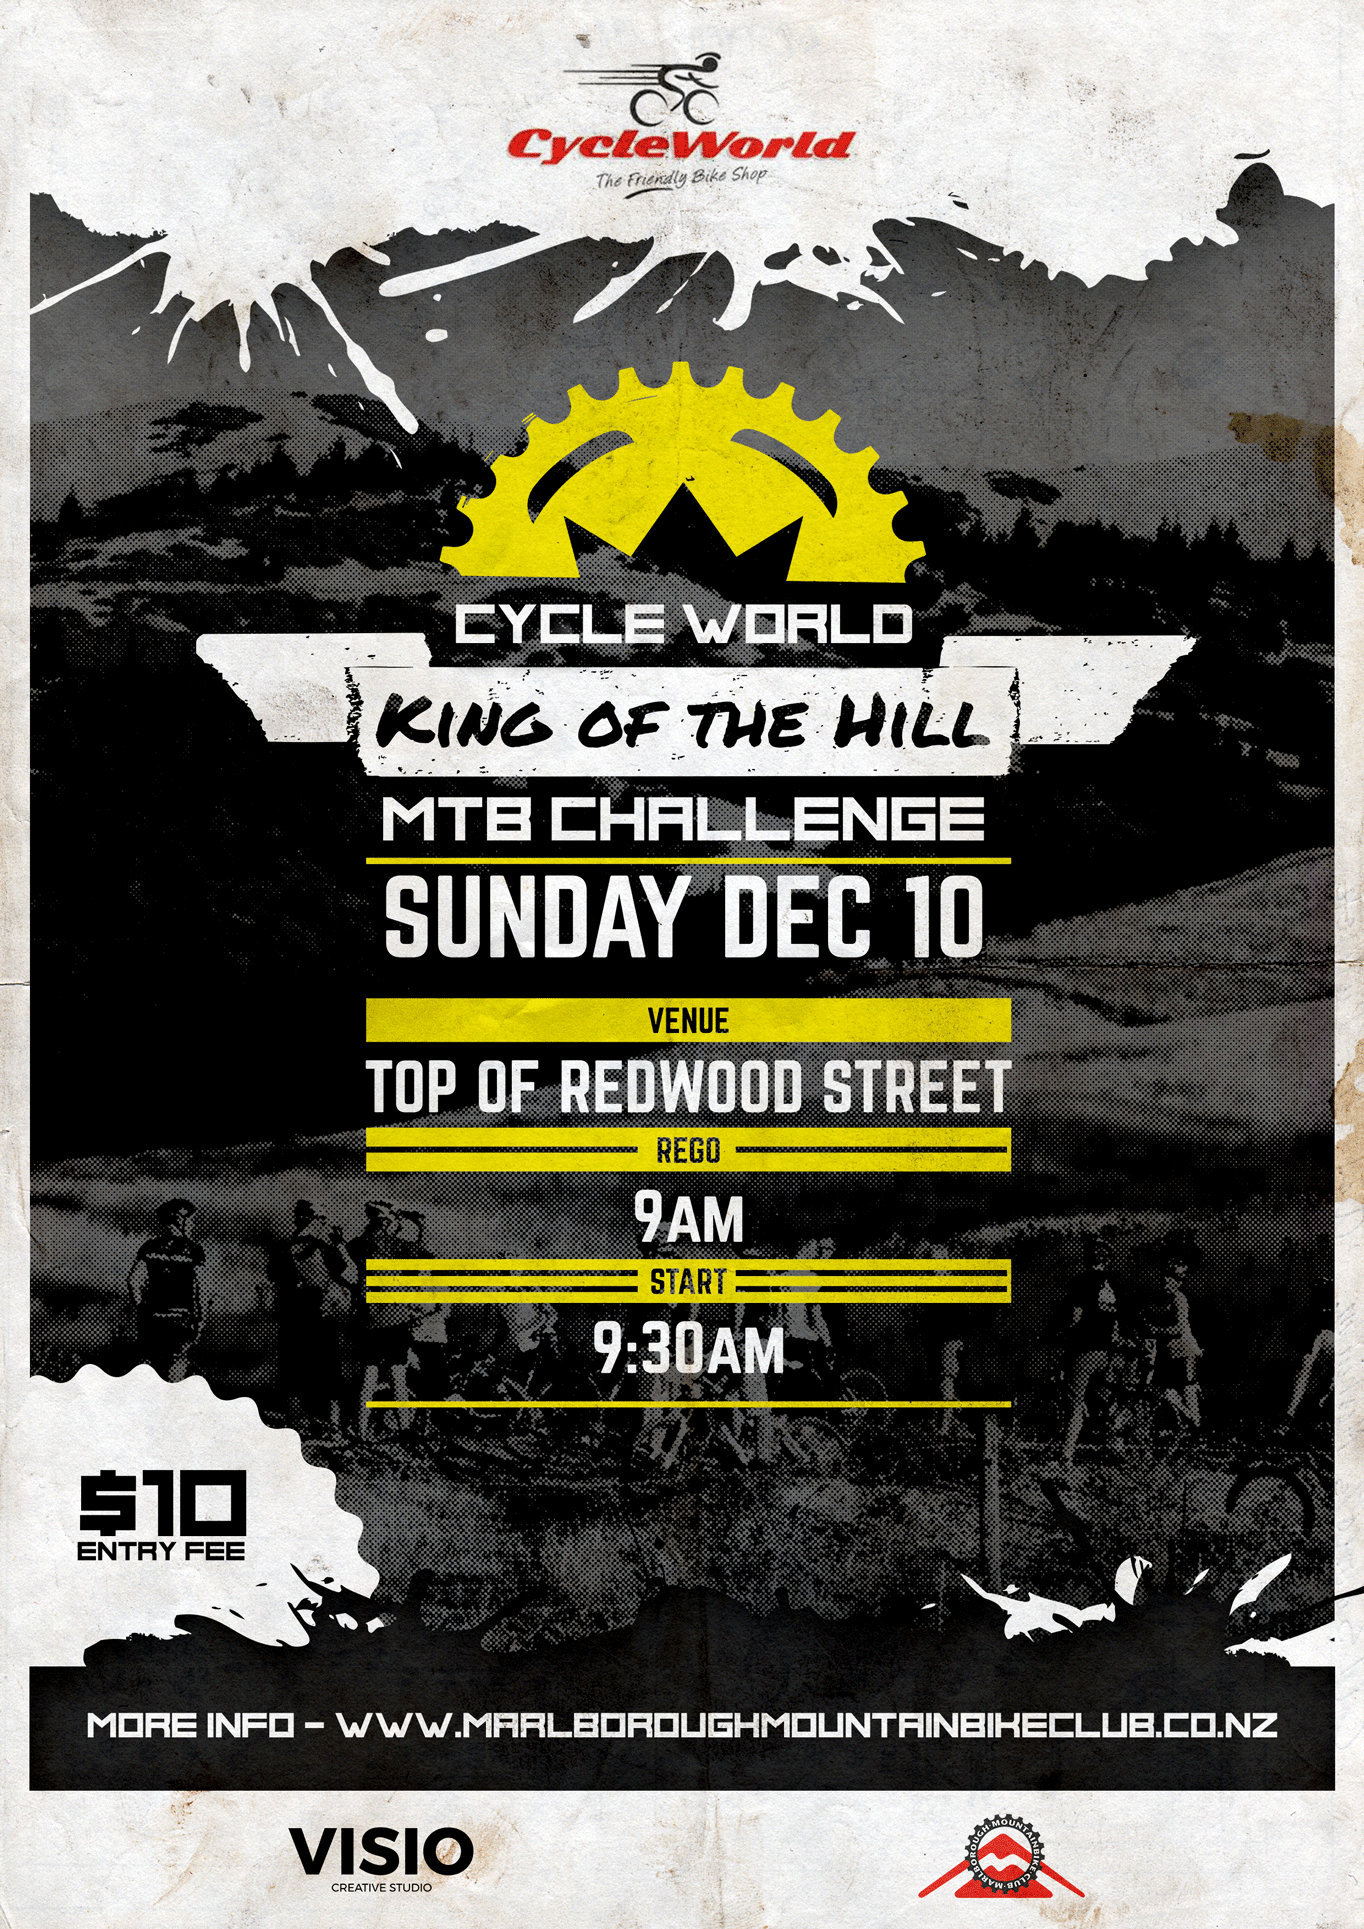 King-of-the-Hill-2017-Web-001.jpg